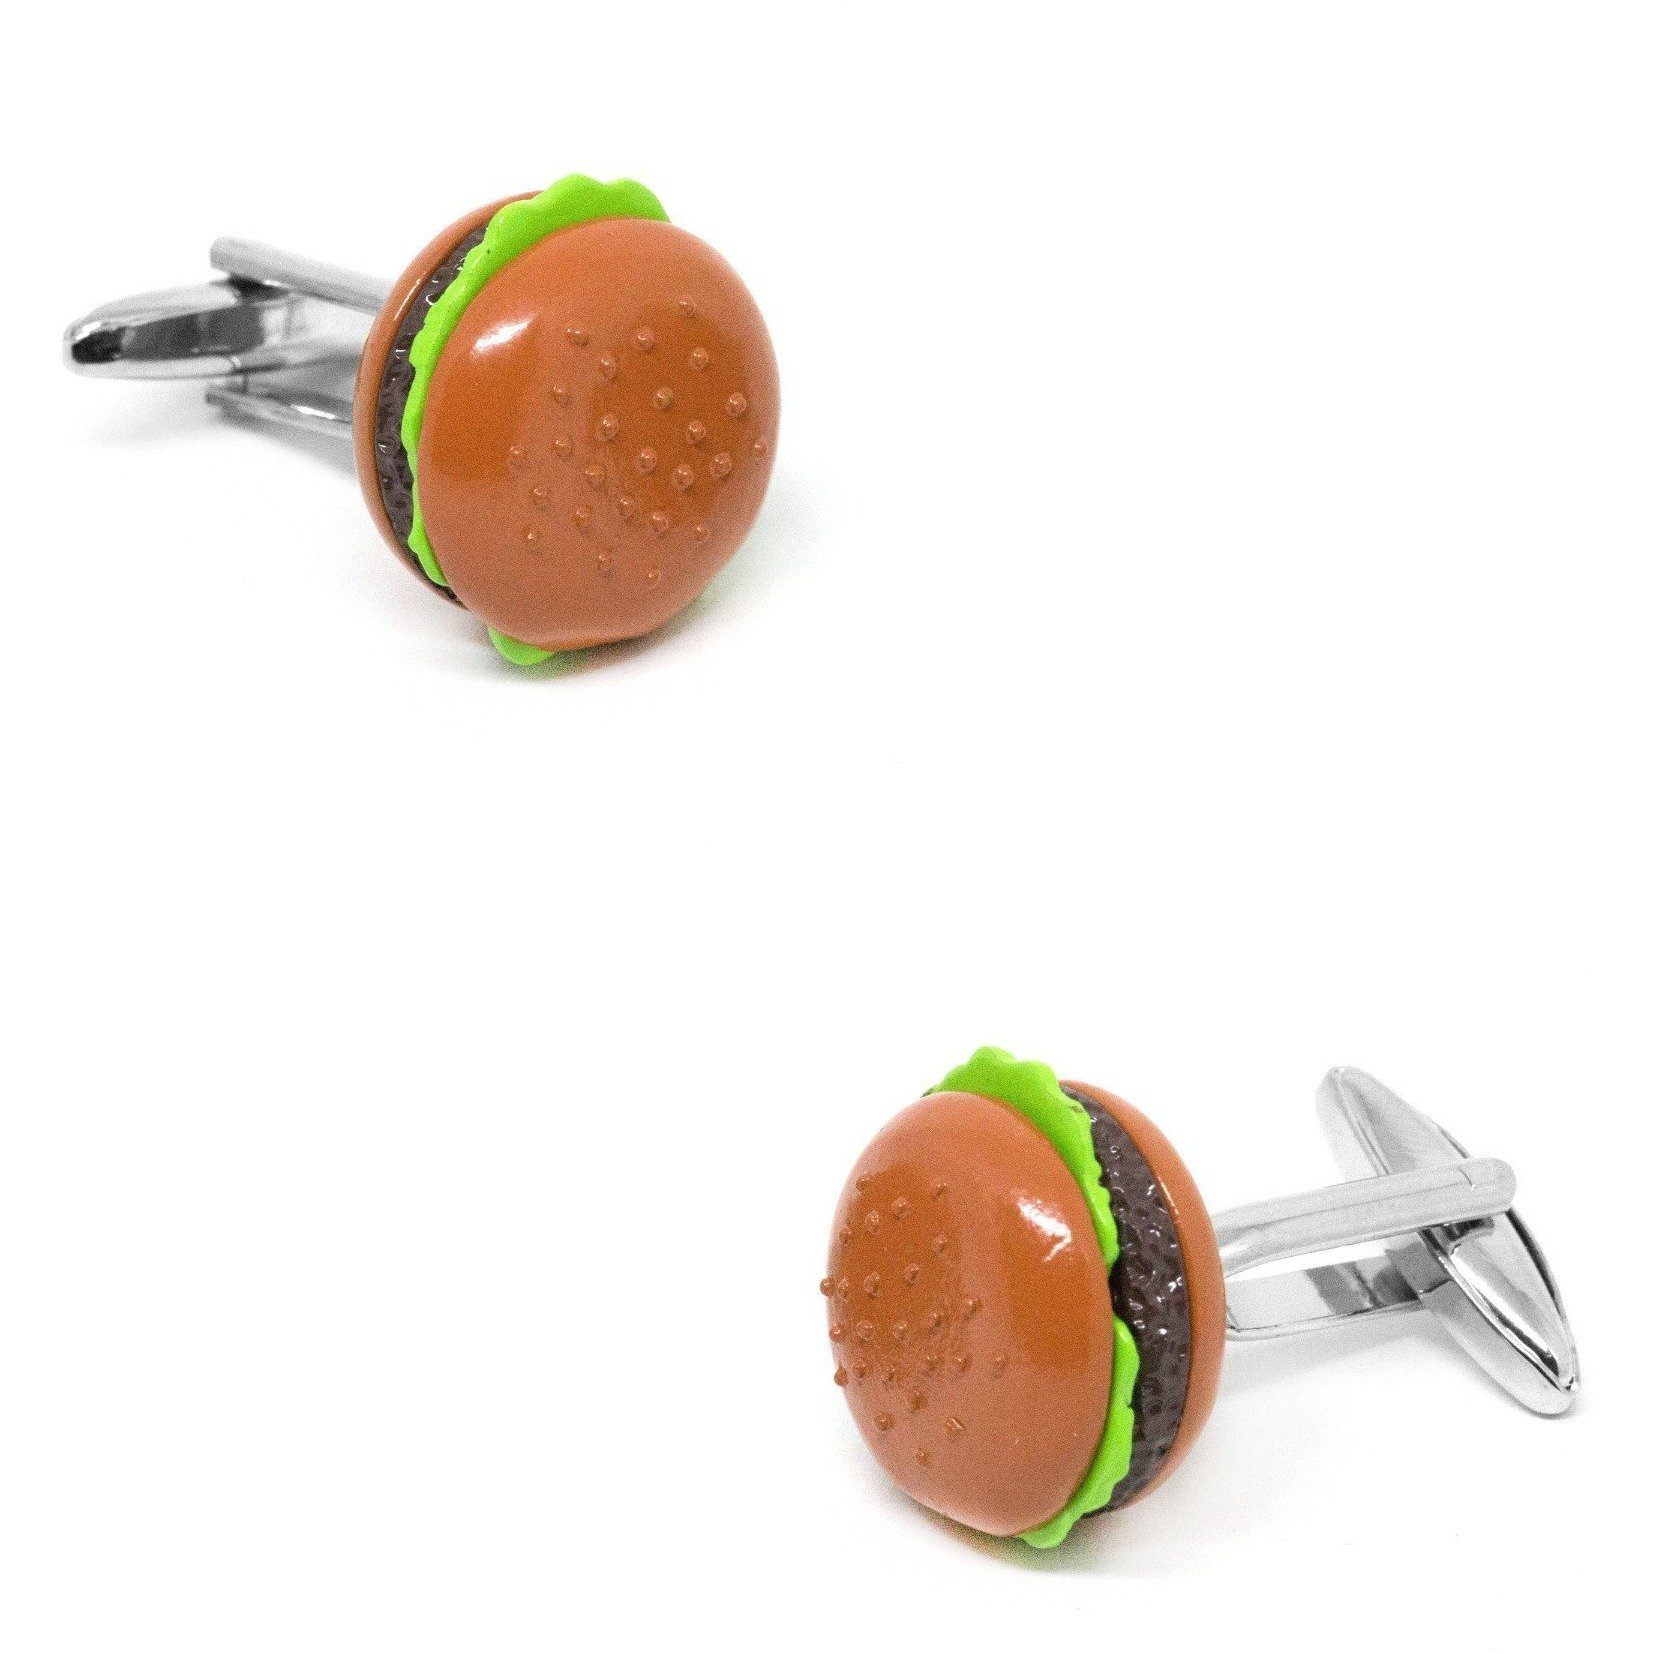 Colour Hamburger Cufflinks, Novelty Cufflinks, Cuffed.com.au, CL6135, $29.00